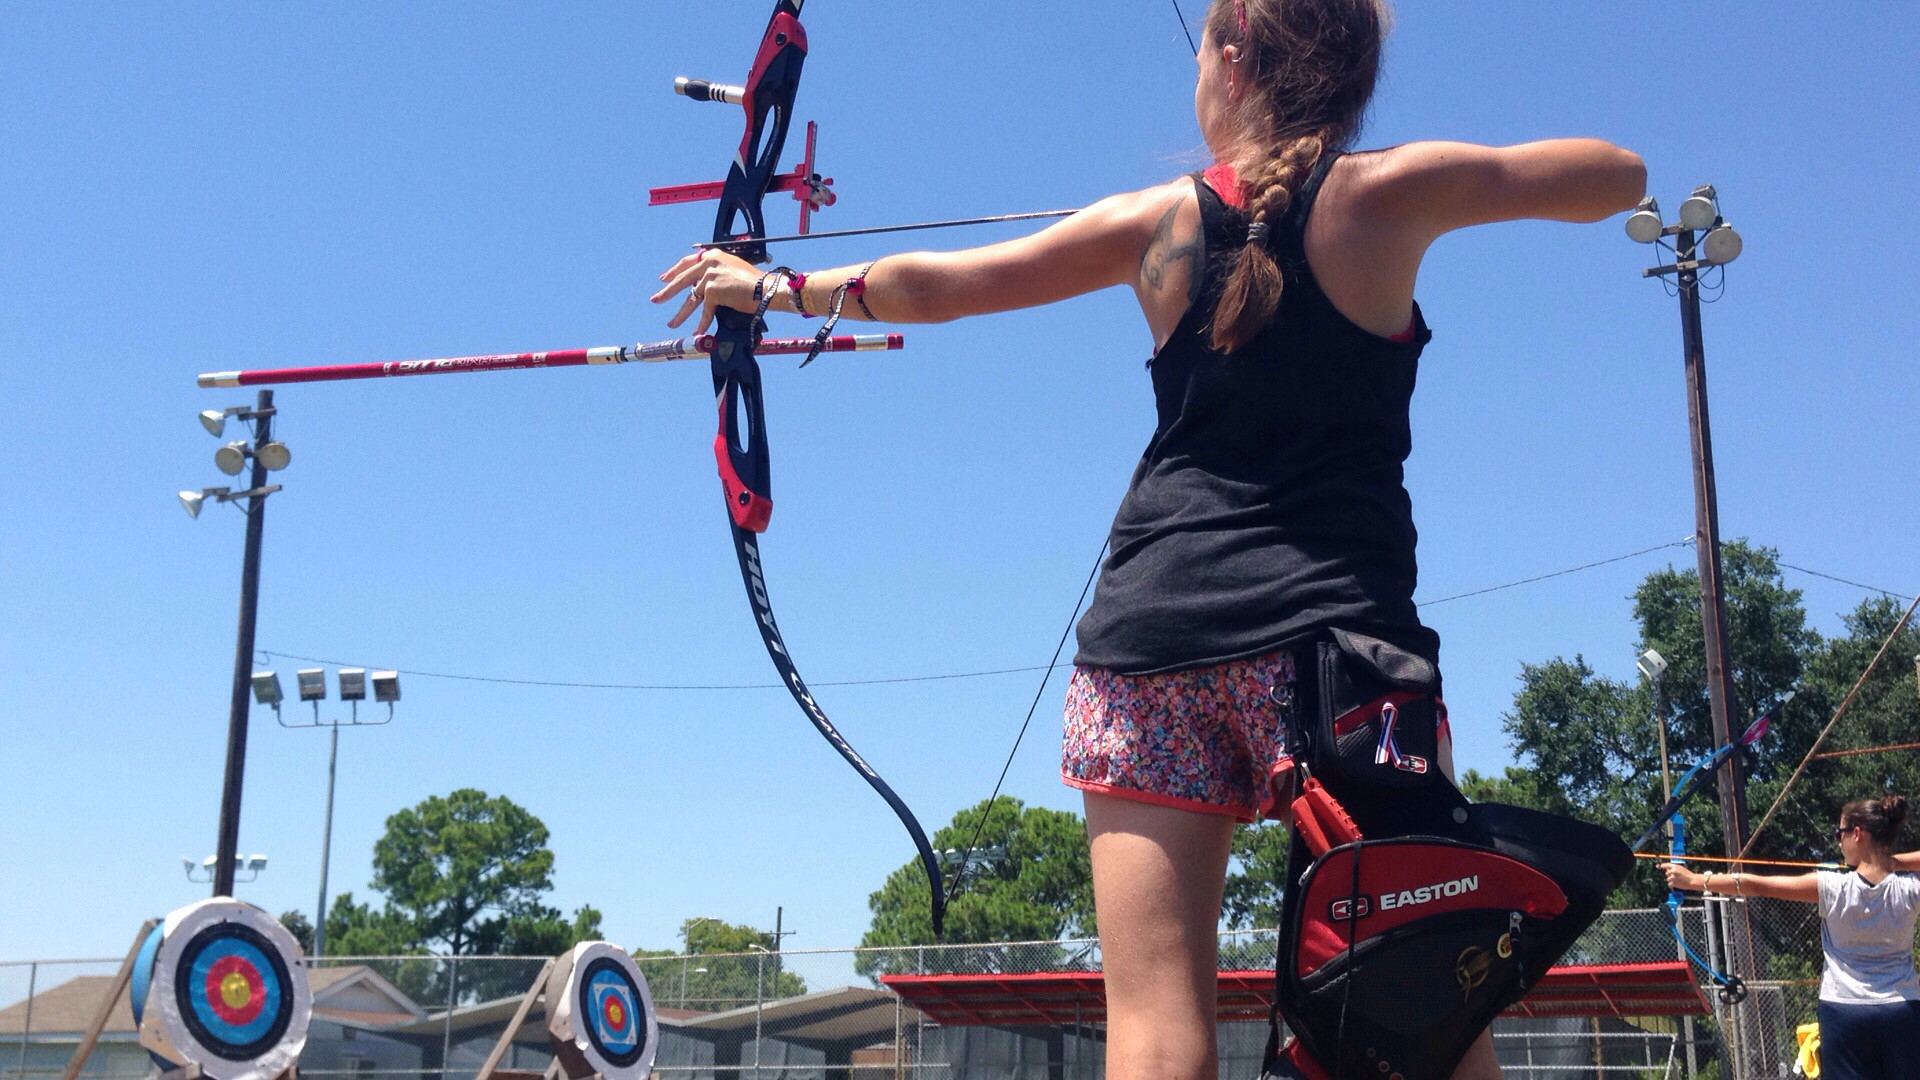 My past two and a half years with archery. From a kids' bow to trying out  for the Olympics soon.